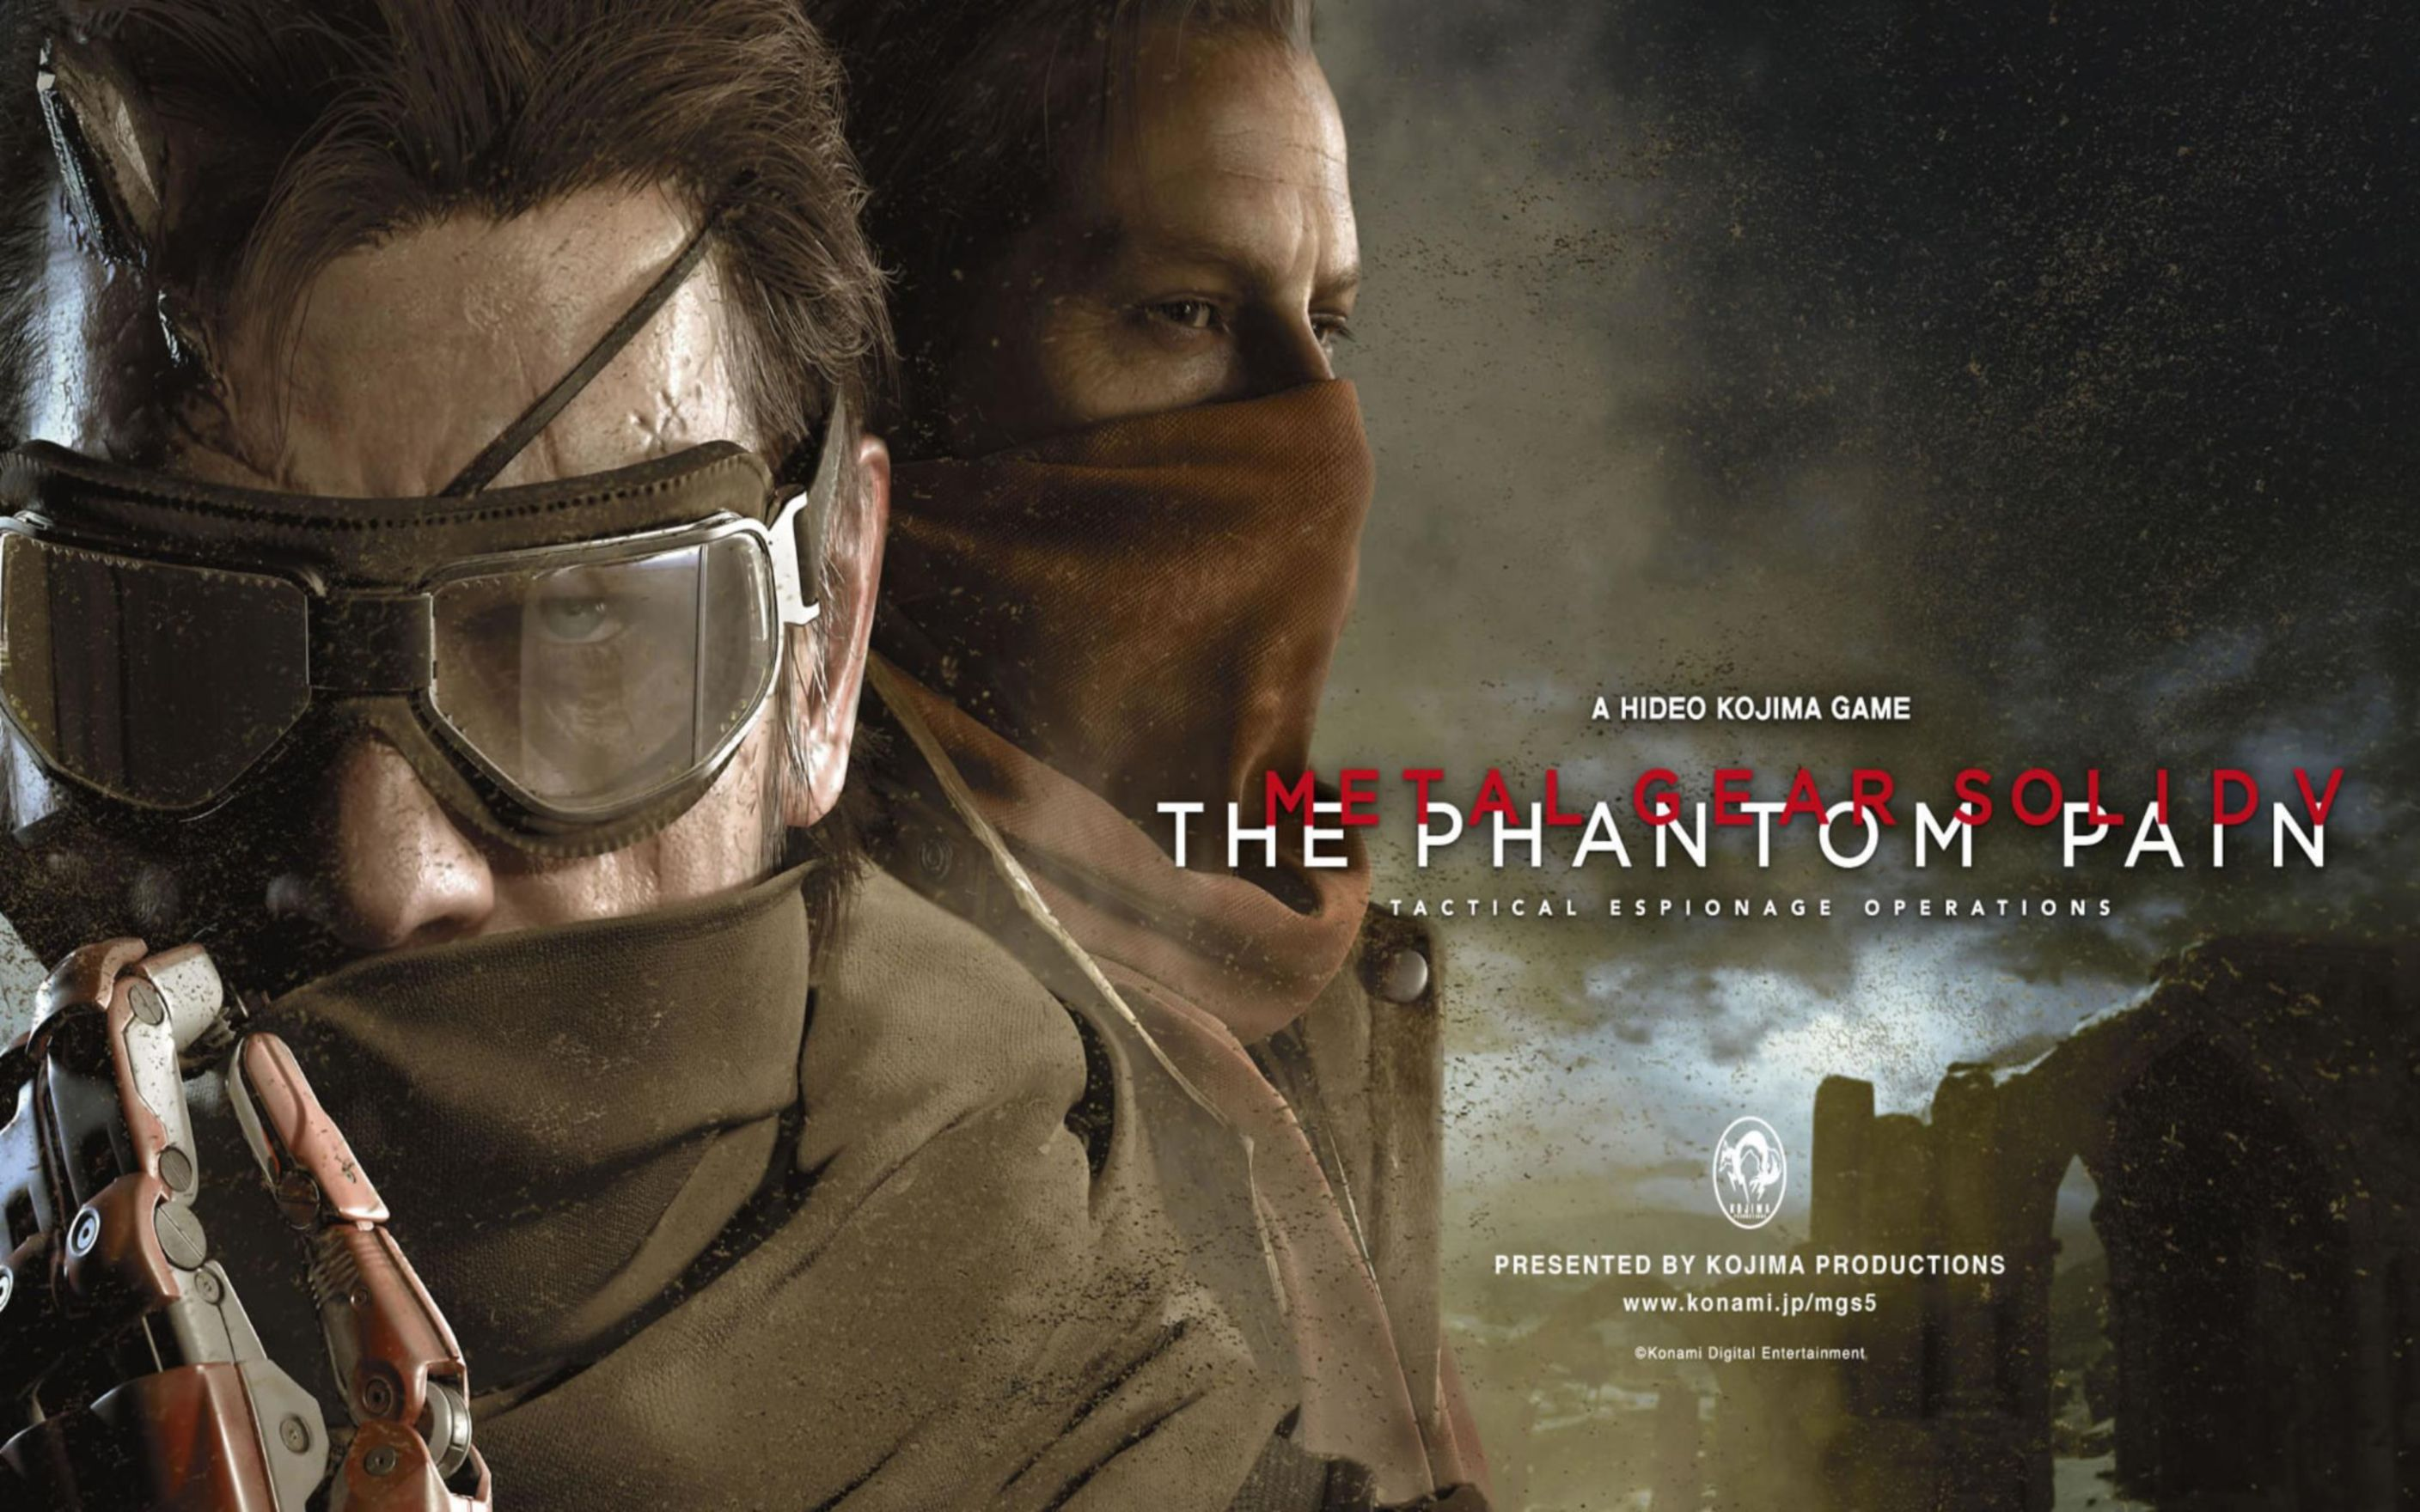 Download free HD Metal Gear Solid V The Phantom Pain Wallpaper, image